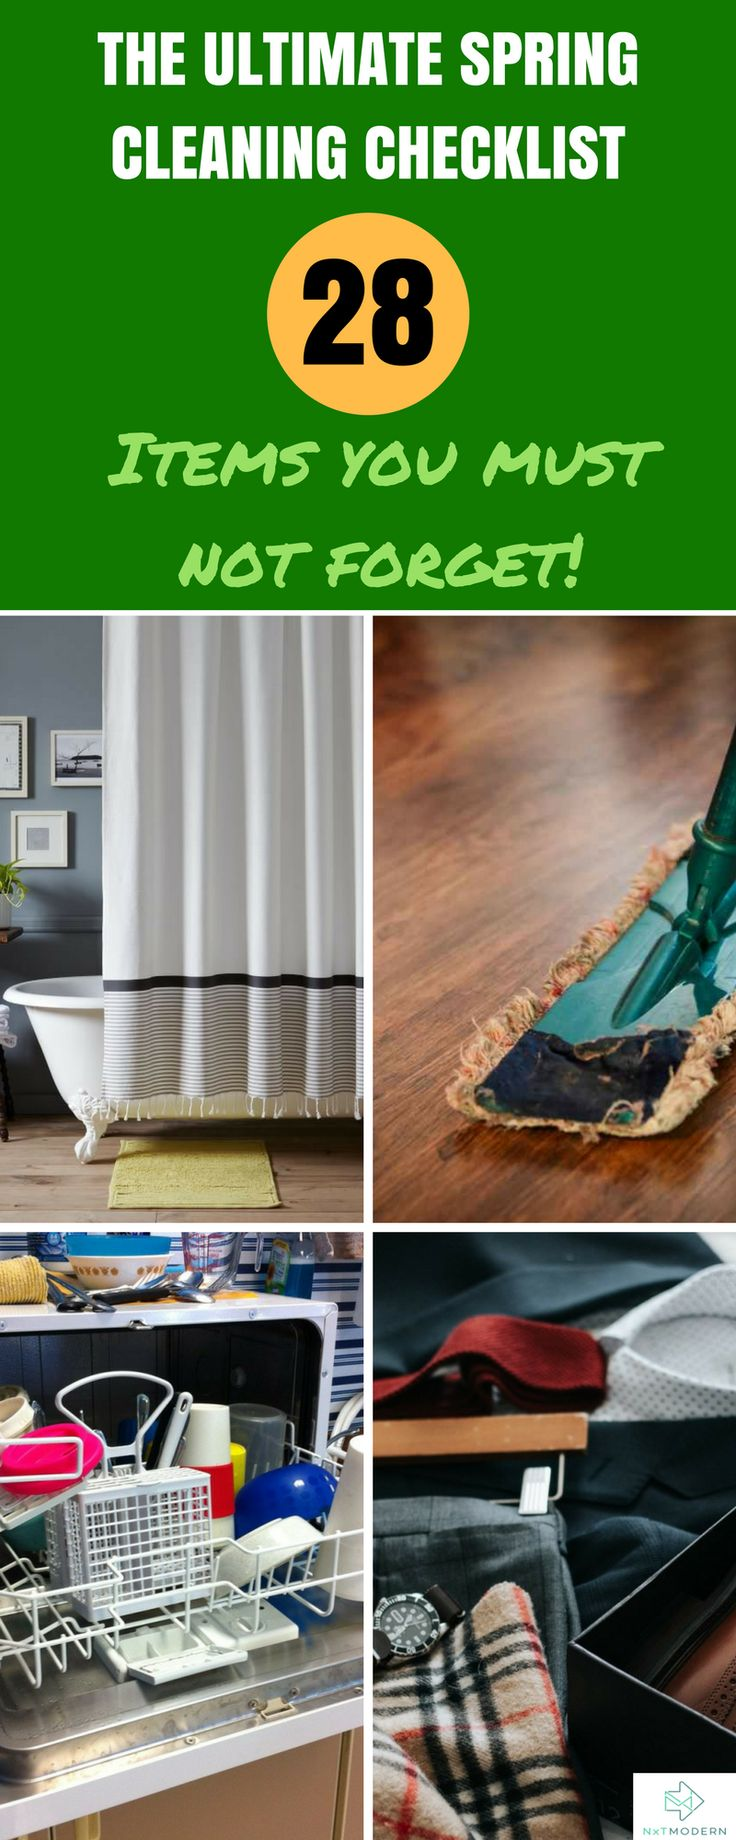 The Ultimate Spring Cleaning List: 28 Items You Must Not Forget